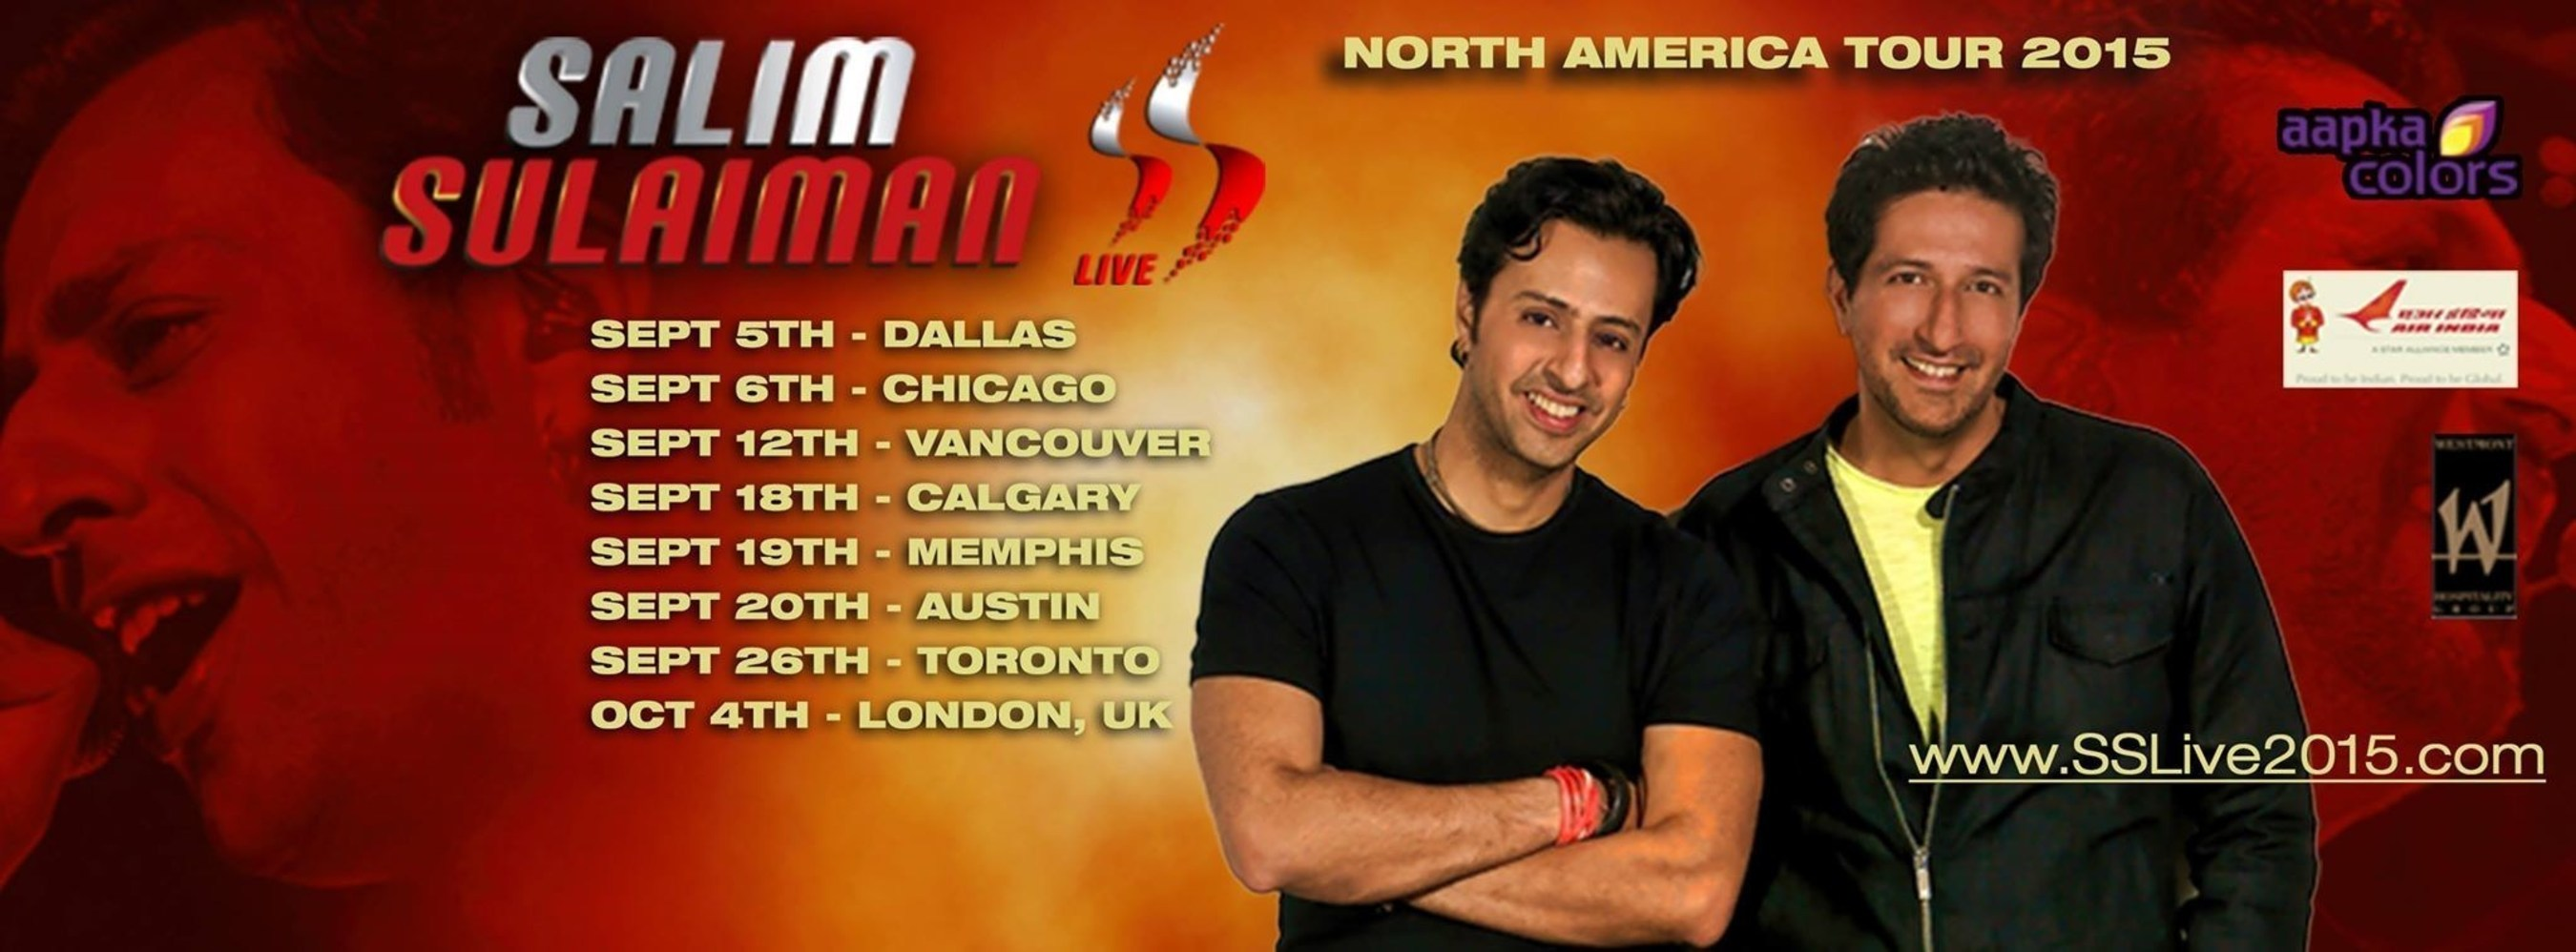 Salim Sulaiman Live - Bollywood's biggest music composers take their musical journey across North